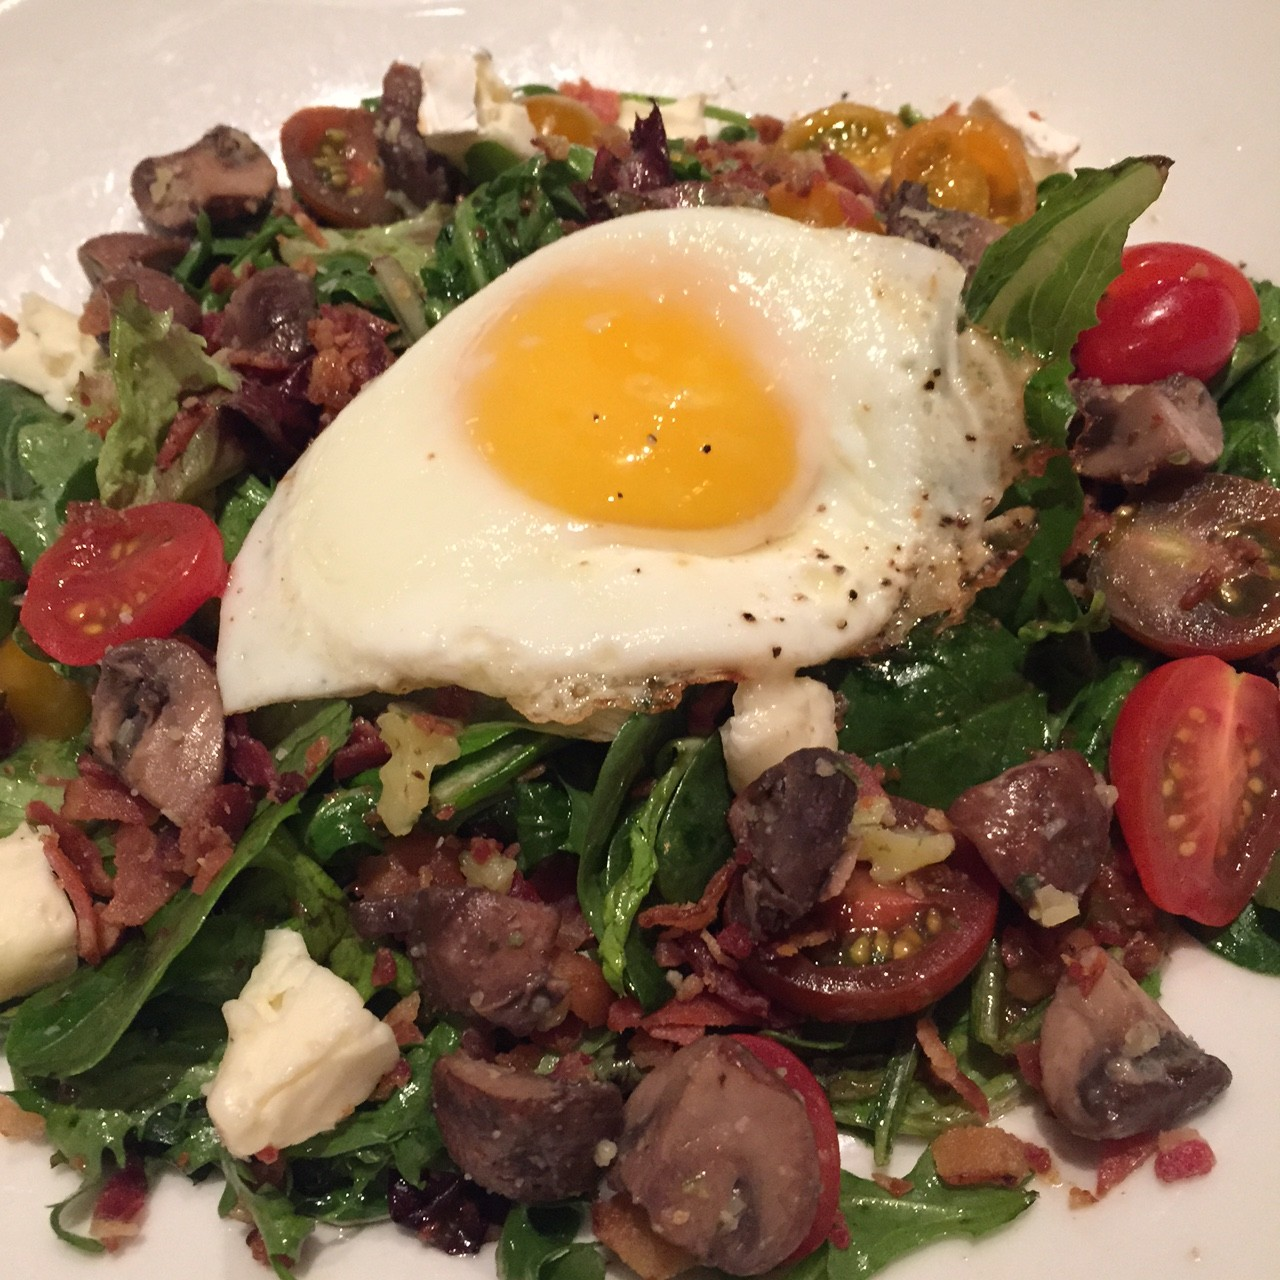 new seasonal salad at gordon biersch via dallasfoodnerd.com